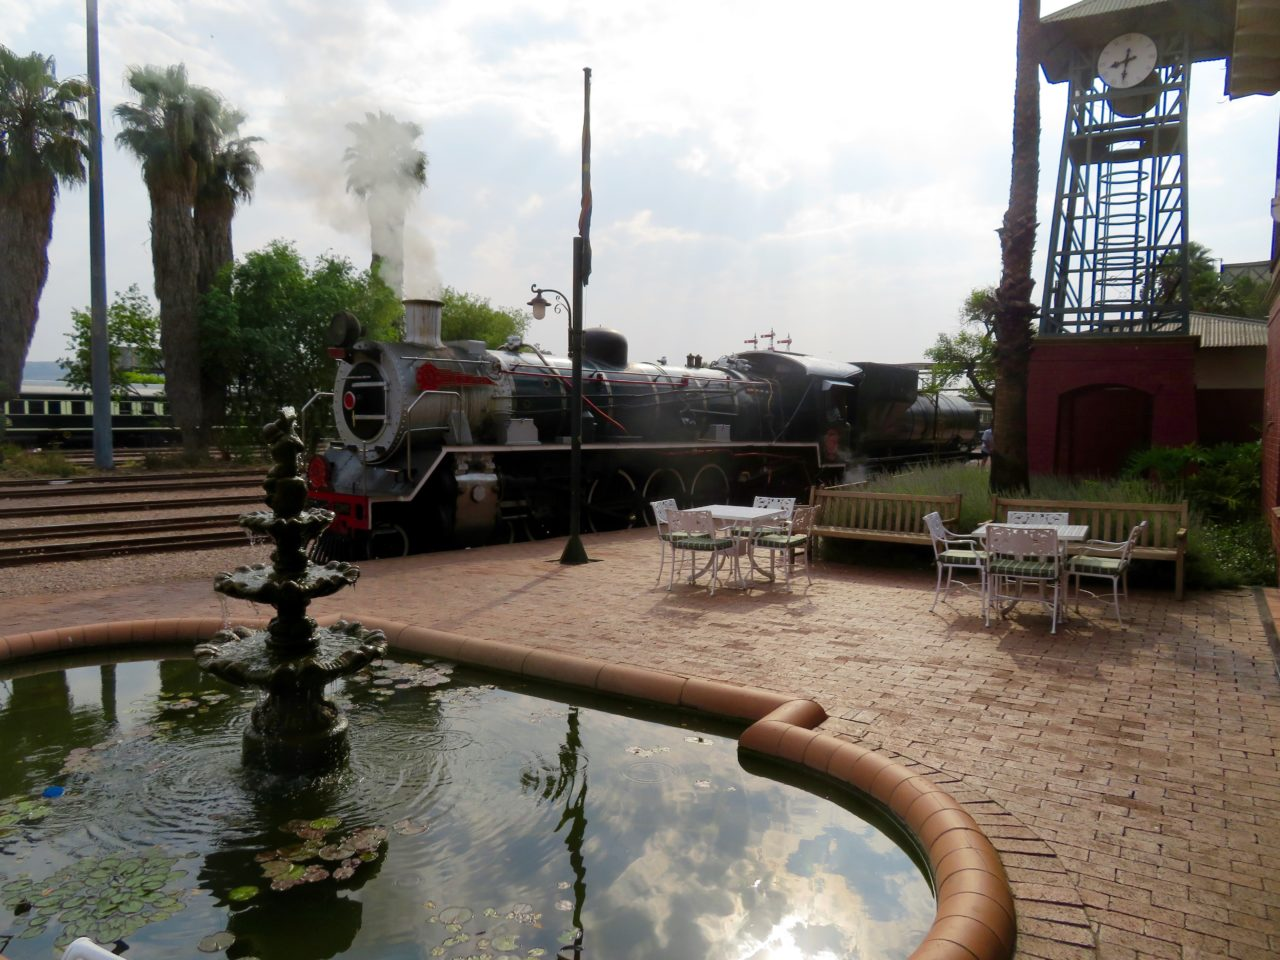 Rovos steam locomotive at the <strong>Rovos <em>Rail</em></strong> station in Pretoria, South Africa